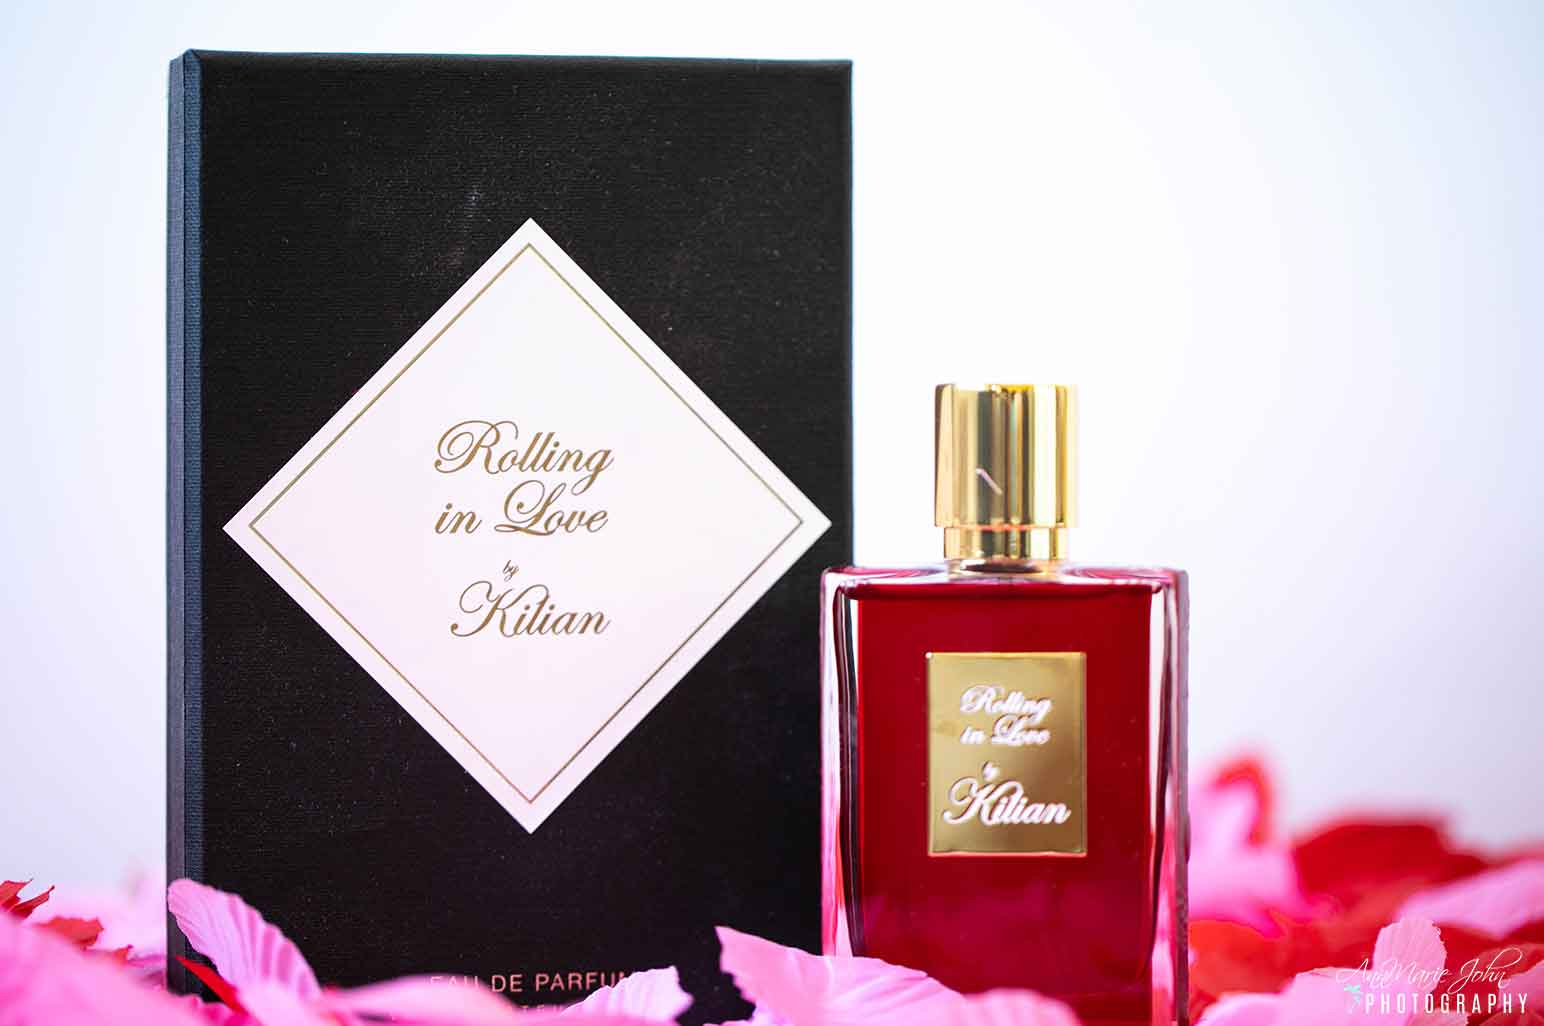 February Niche Fragrance of the Month: Rolling in Love by Kilian